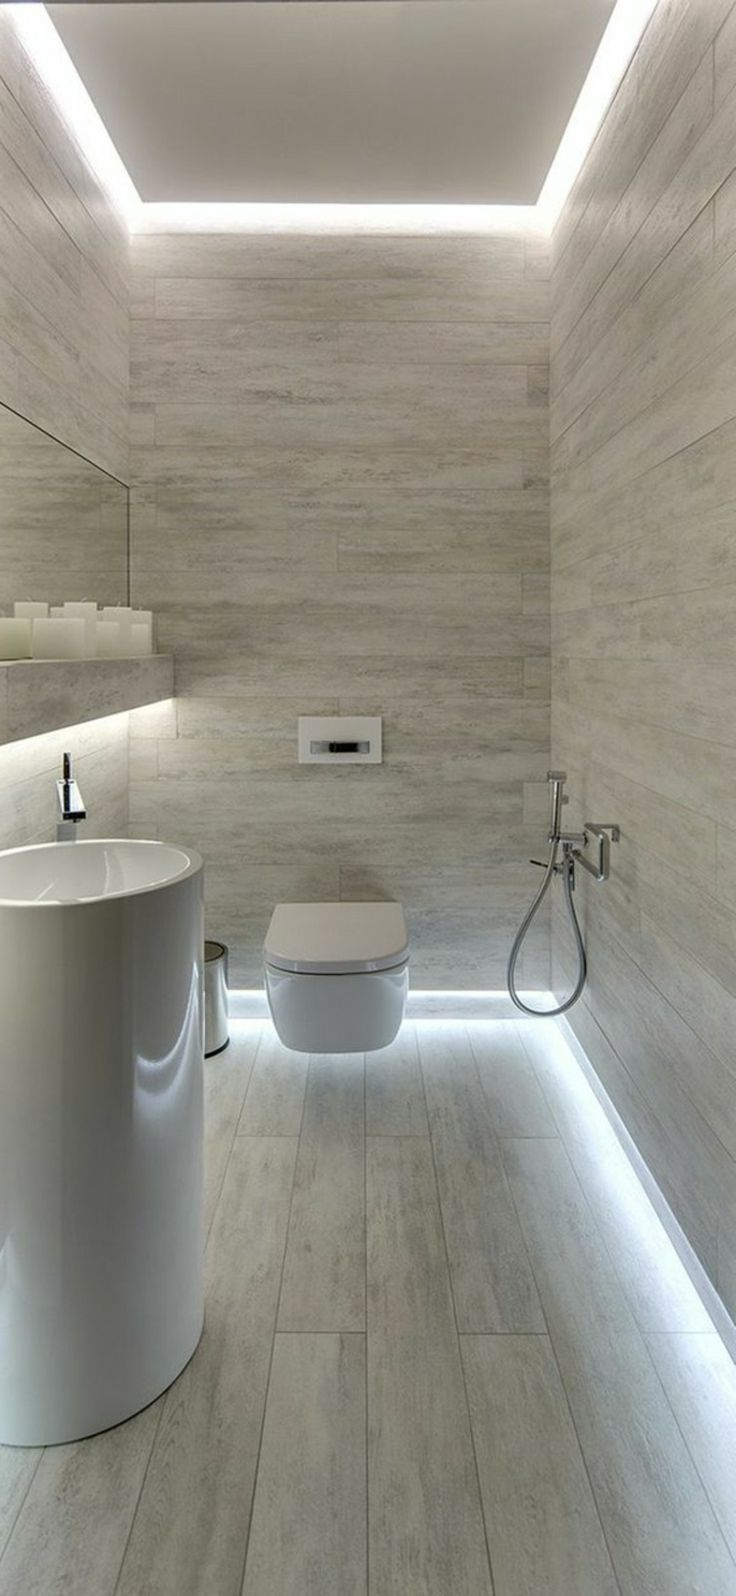 20 Relaxing Bathroom Ceiling Lights Ideas For Cozy Bathroom To Try Modern Bathroom Design Bathroom Design Luxury Bathroom Ceiling Light